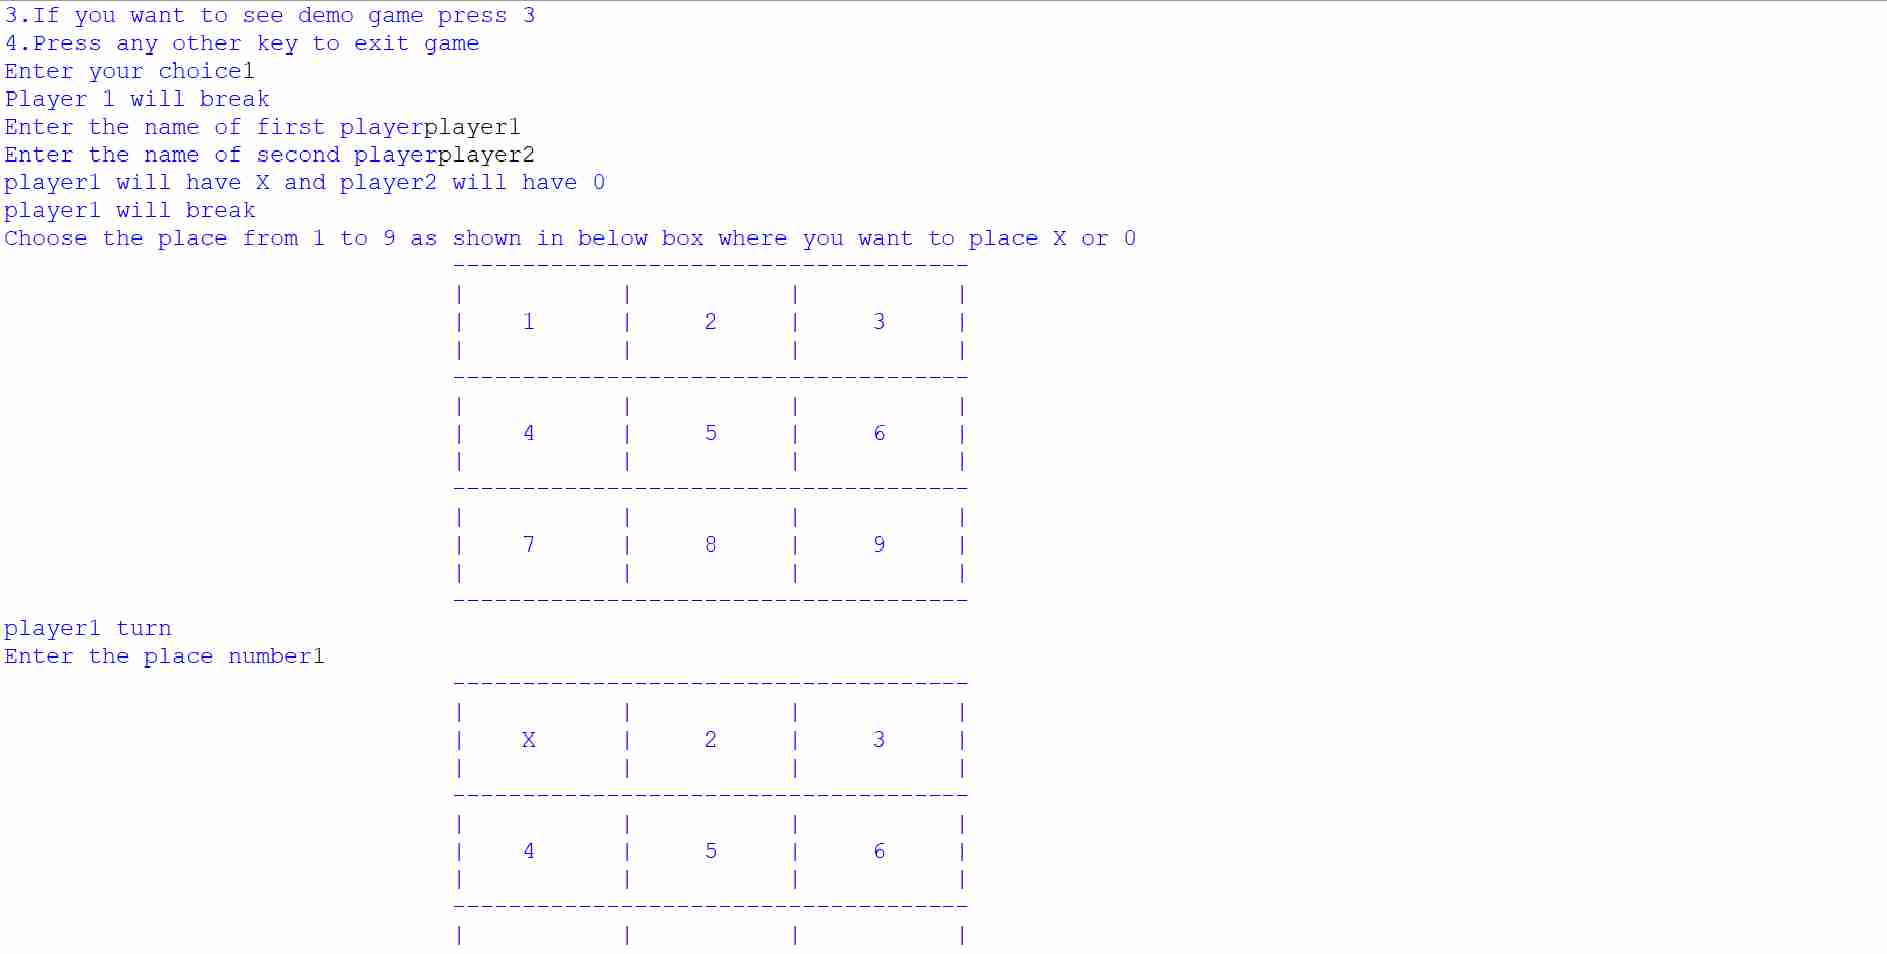 Tic-Tac-Toe game using python